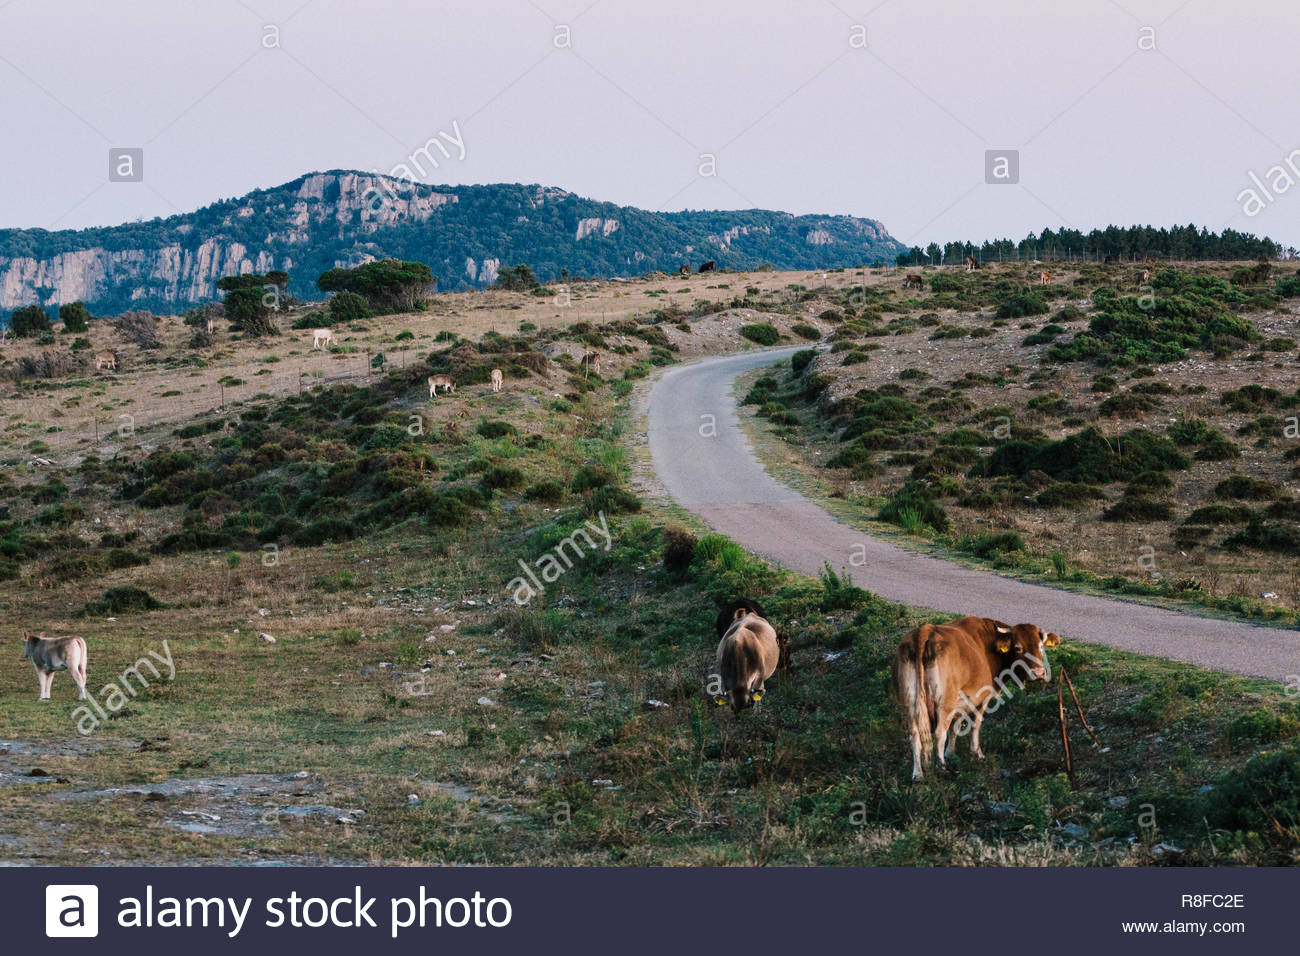 Cows eating along the road in the Italian mountains of Sardinia. Stock Photo